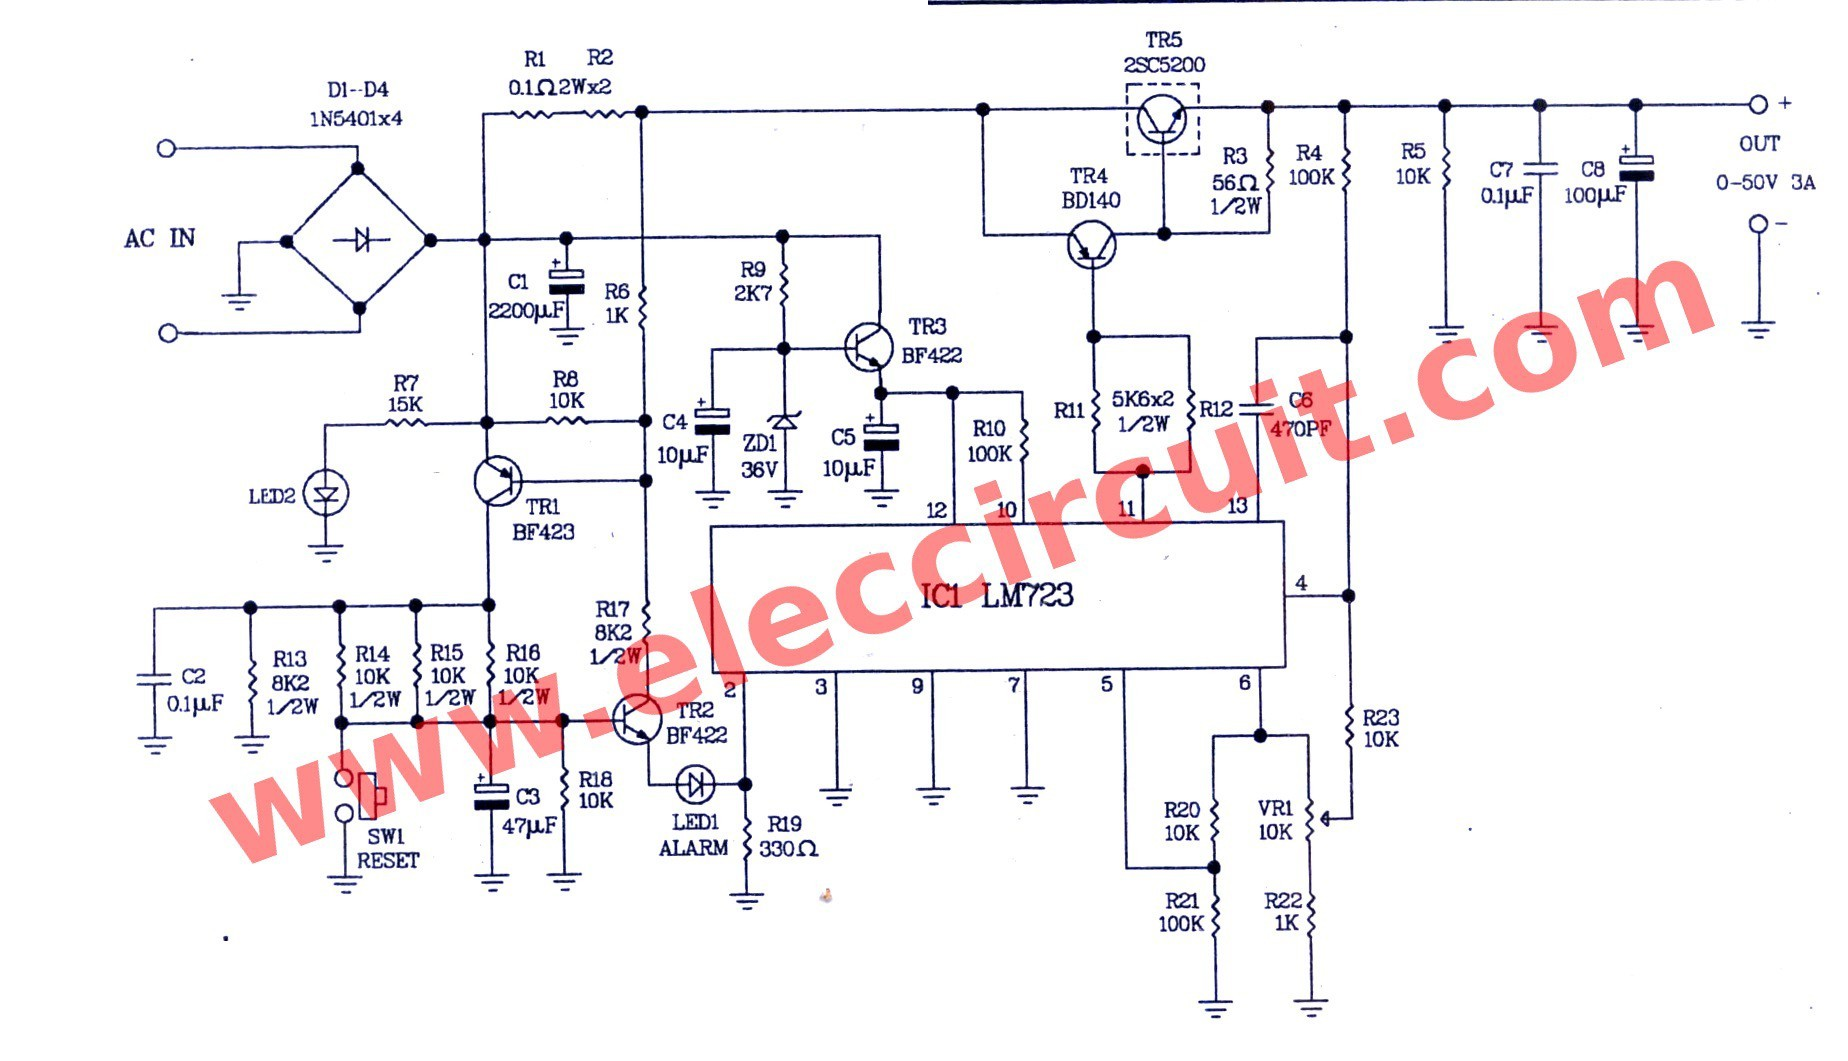 Amplifier Circuit Diagram New Ponent 0 50v Variable Power Supply Circuit at 3a 100 Kv High